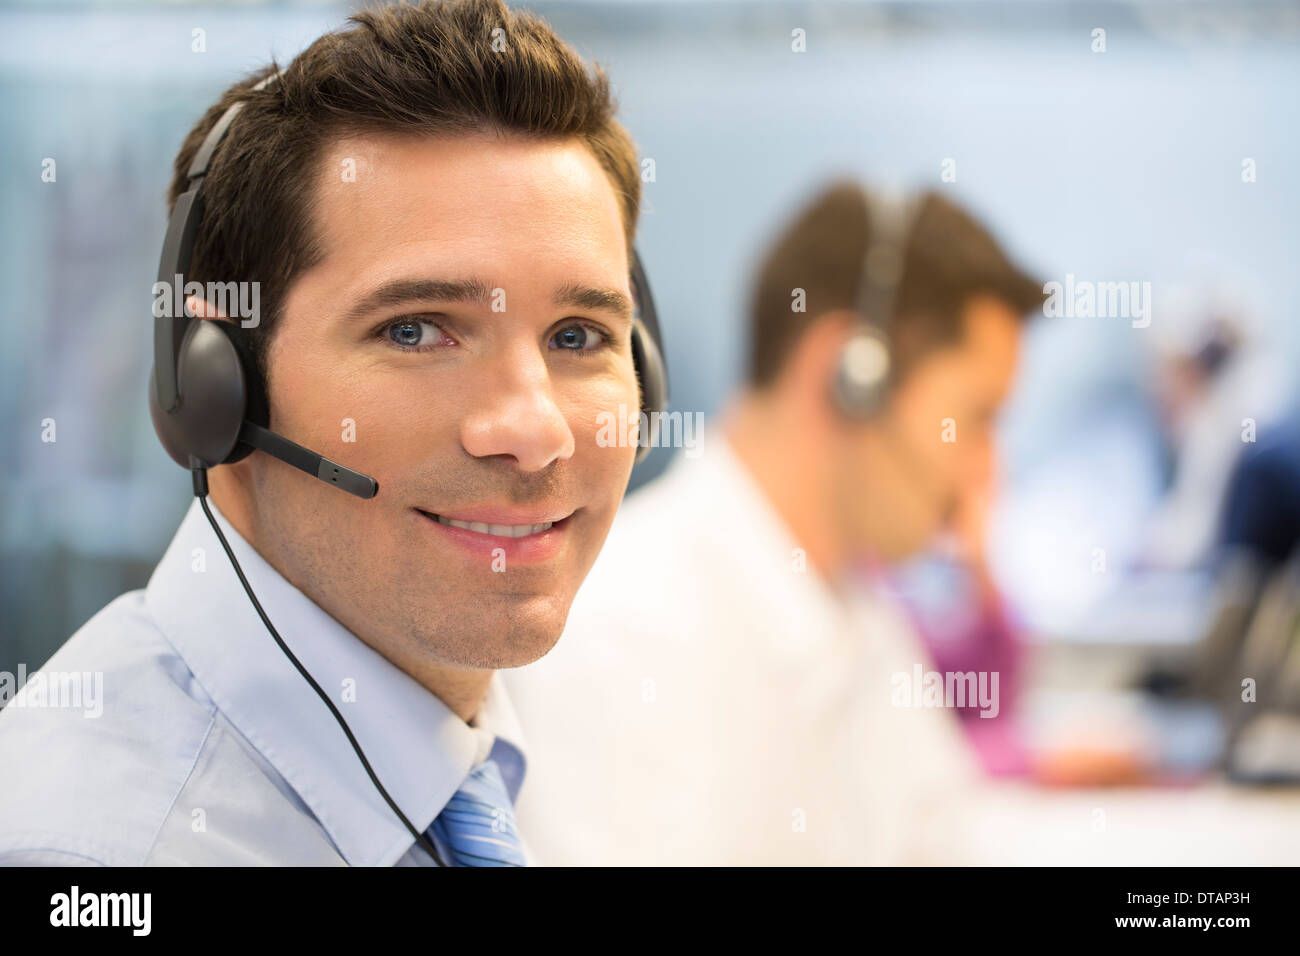 Portrait of operator in office on phone with headset, looking camera - Stock Image